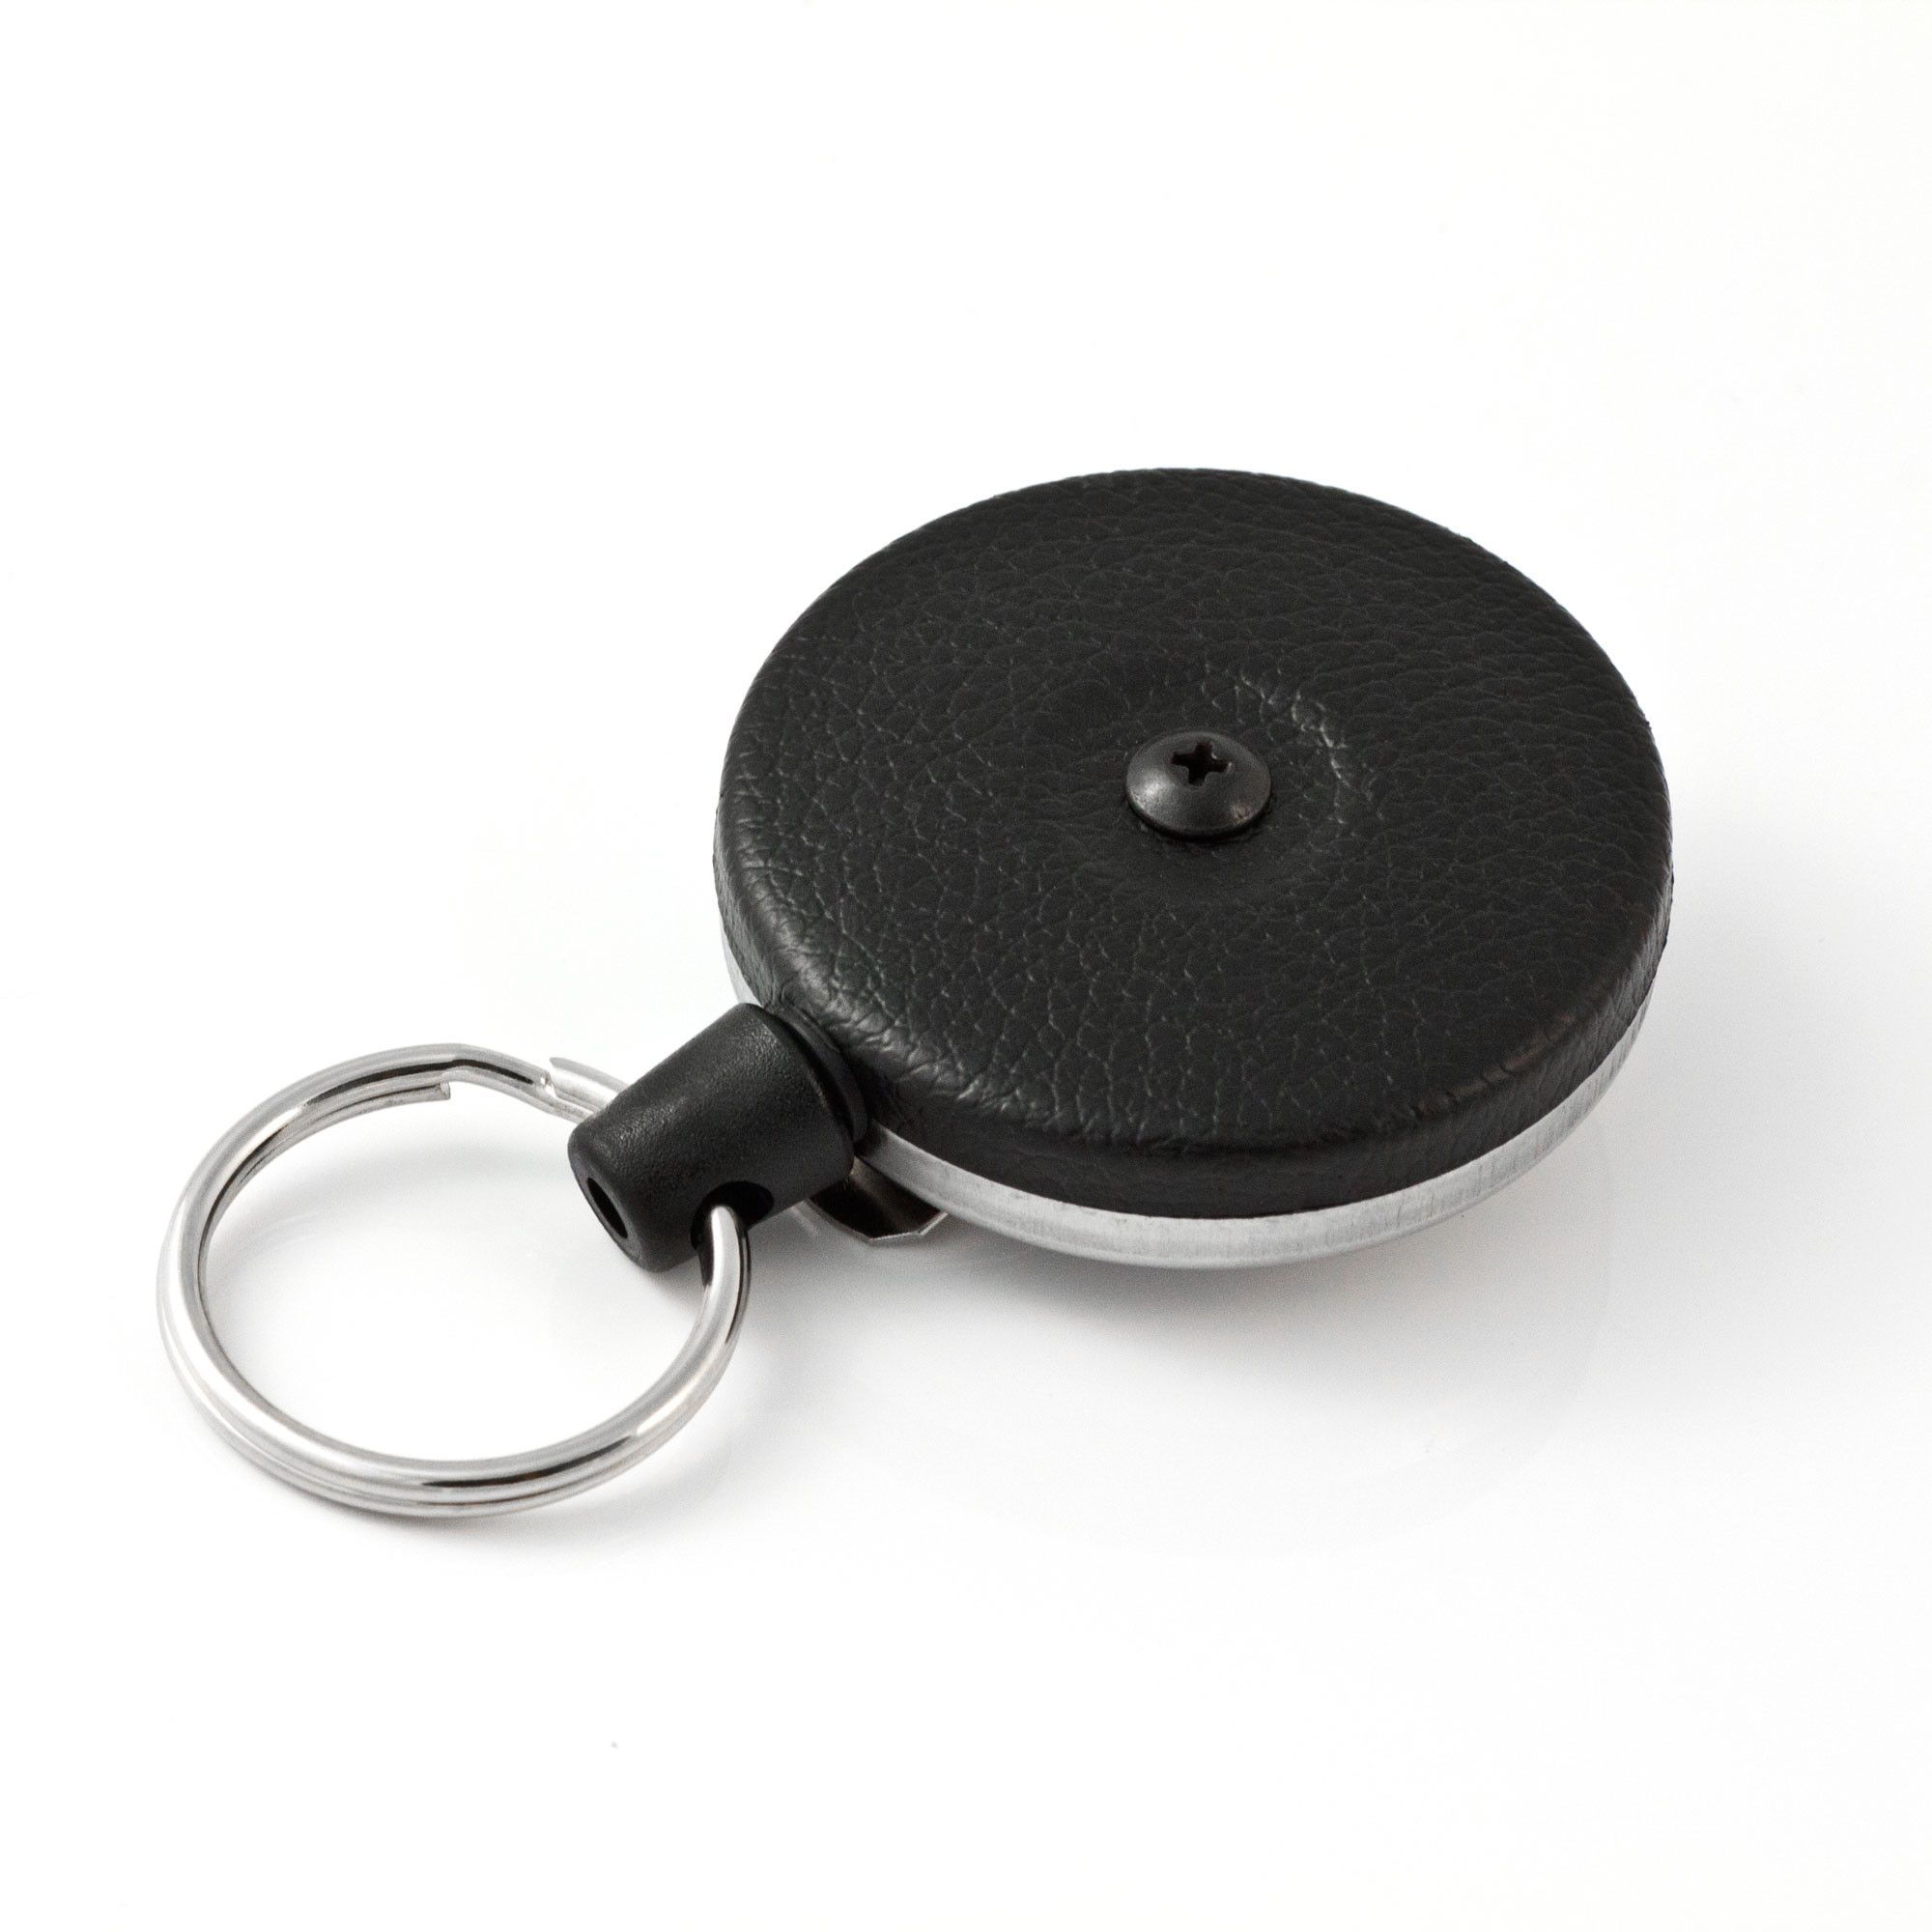 The-Original-KEY-BAK-Retractable-Key-Holder-IDSupplies